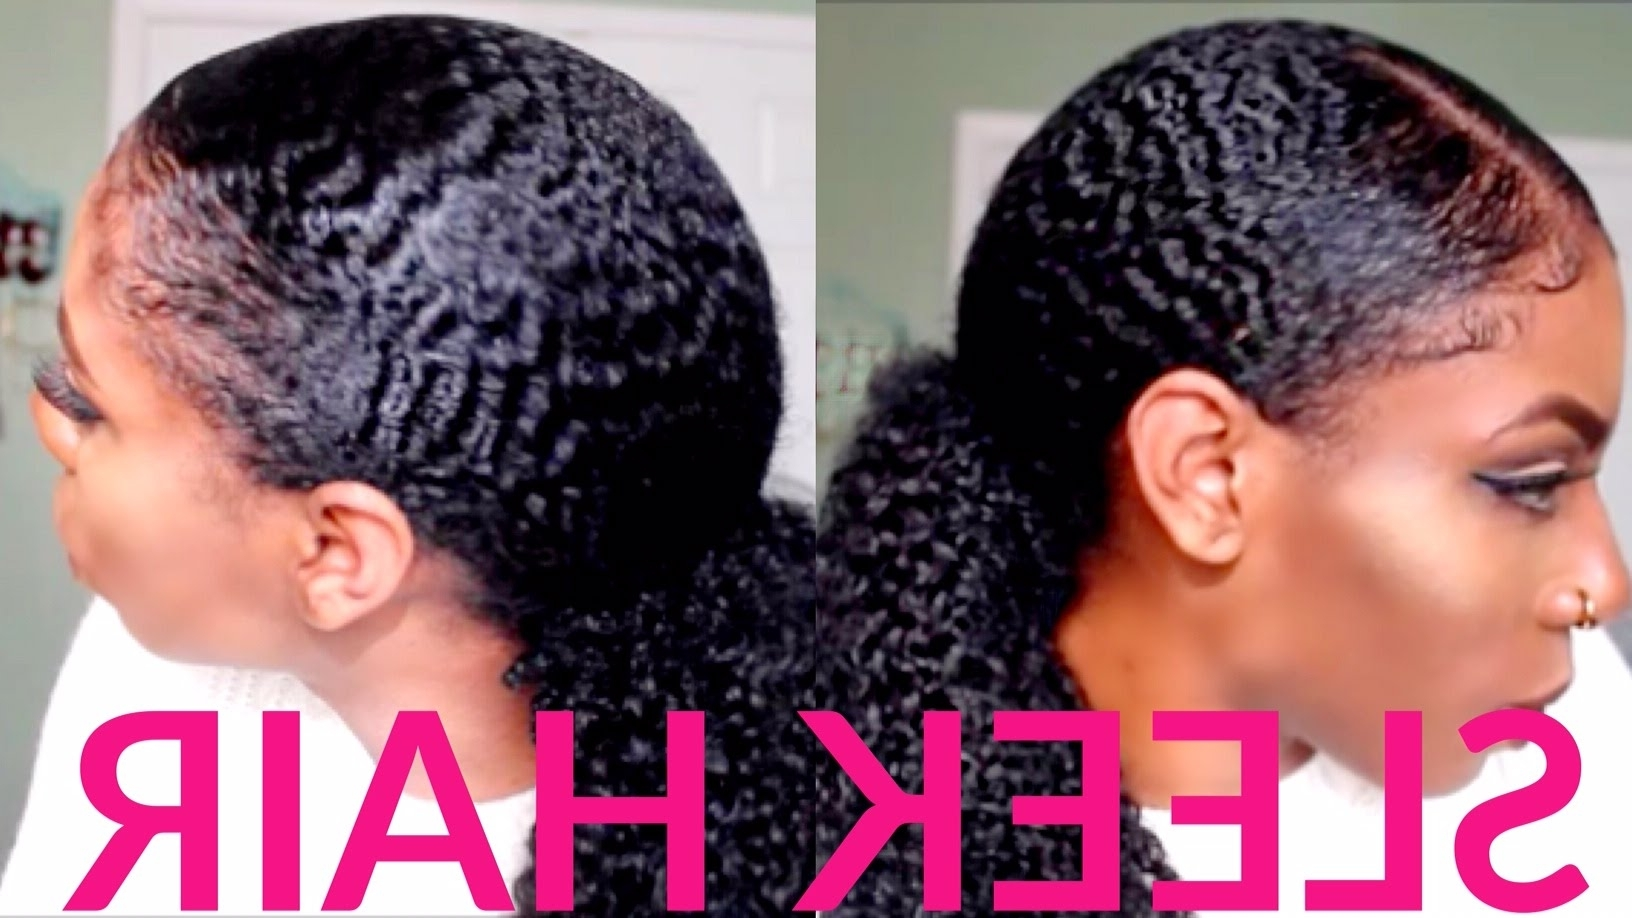 Amazing How To Wavy Curly Sleek Pony Tail With Baby Clip Ins Of Fake Inside Favorite Sleek Ponytail Hairstyles With Waves (View 3 of 20)